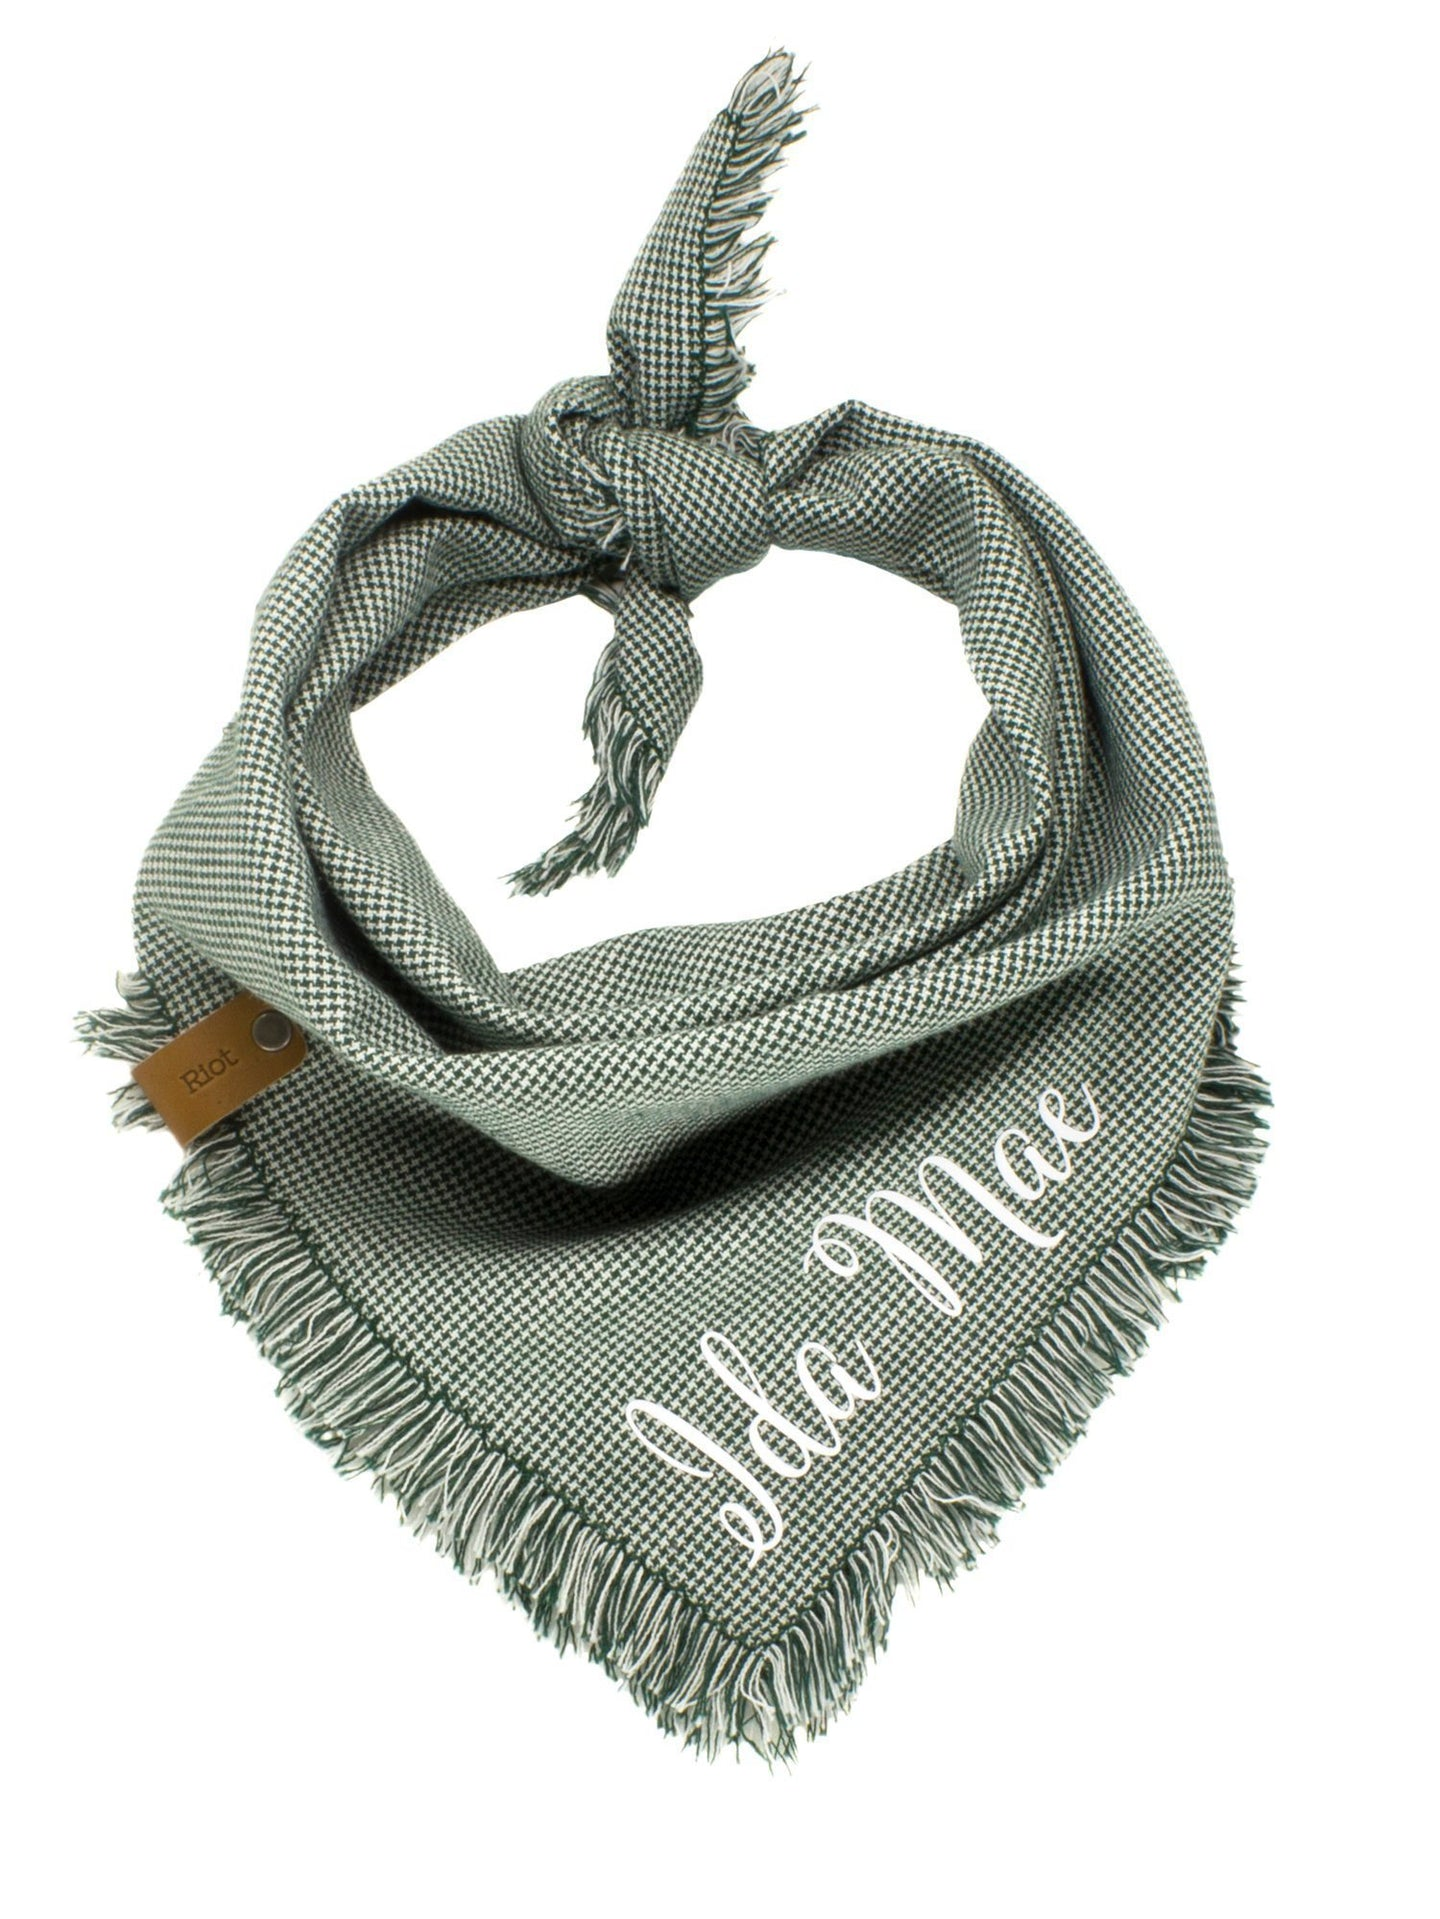 The Triangle Scarf - Houndstooth Green